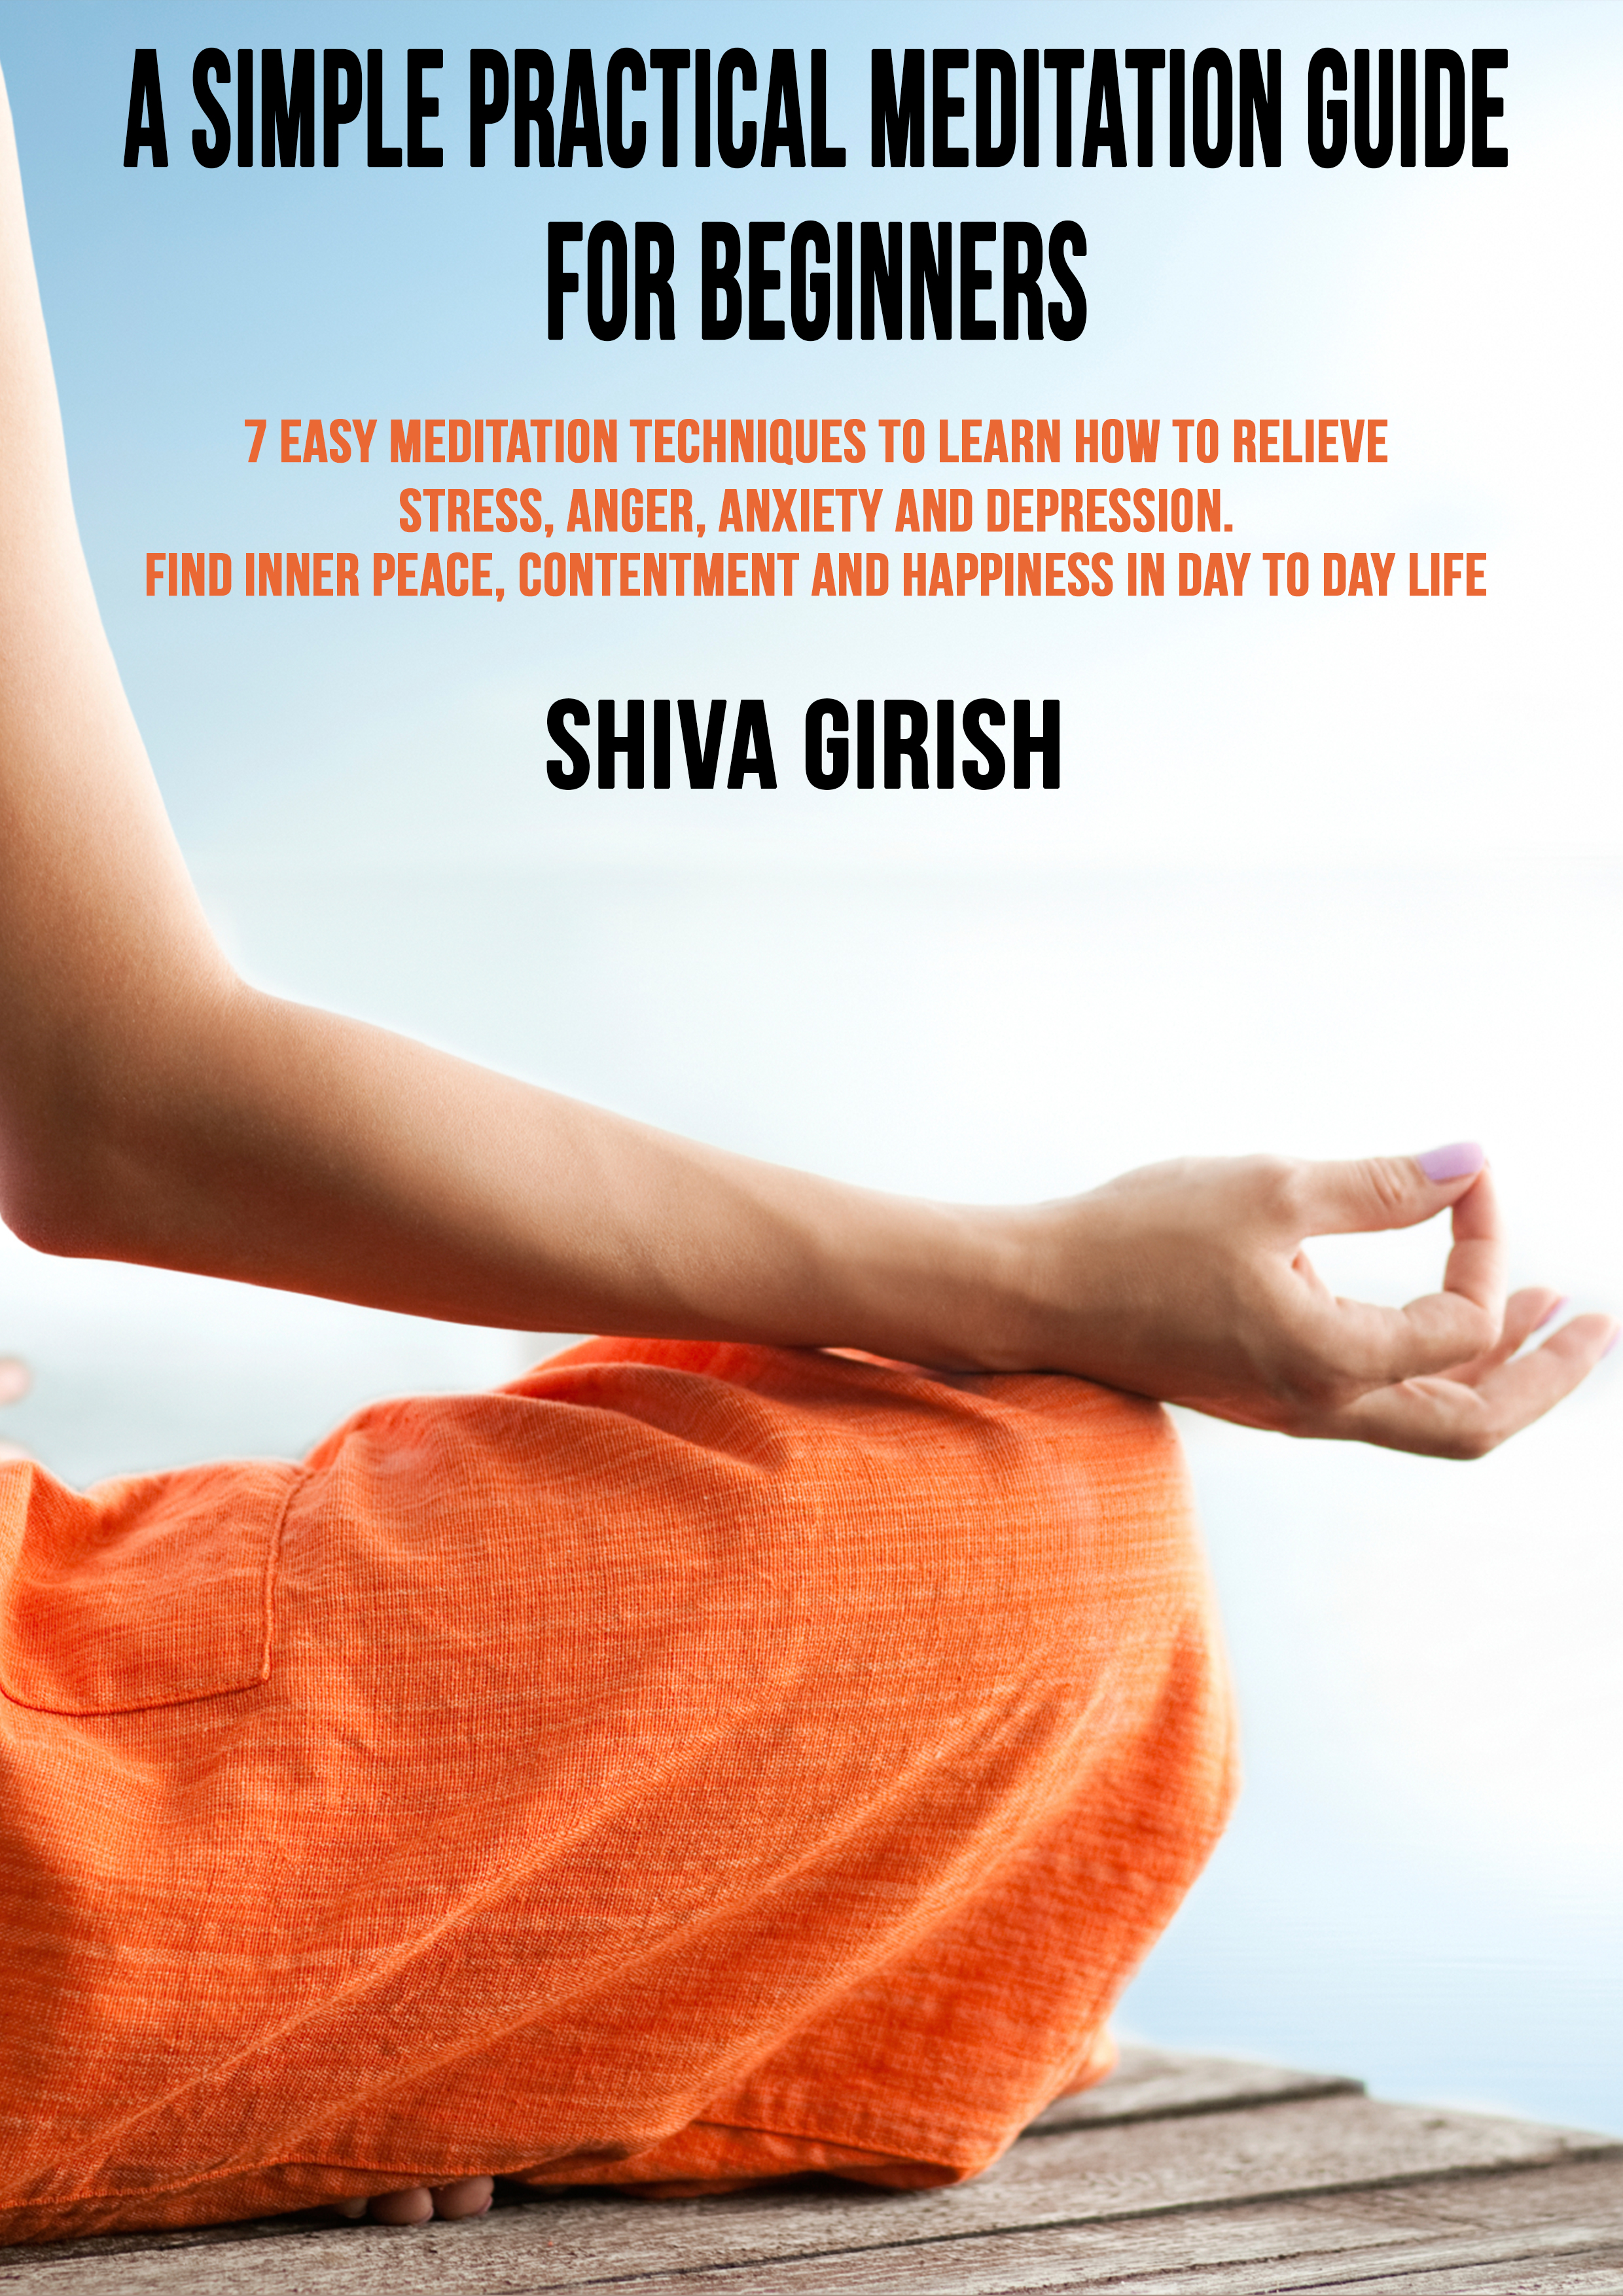 Smashwords A Simple Practical Meditation Guide For Beginners 7 Easy Yoga Meditation Techniques To Learn How To Strengthen Your Immunity Naturally Relieve Stress Anger Anxiety And Depression Find Inner Peace